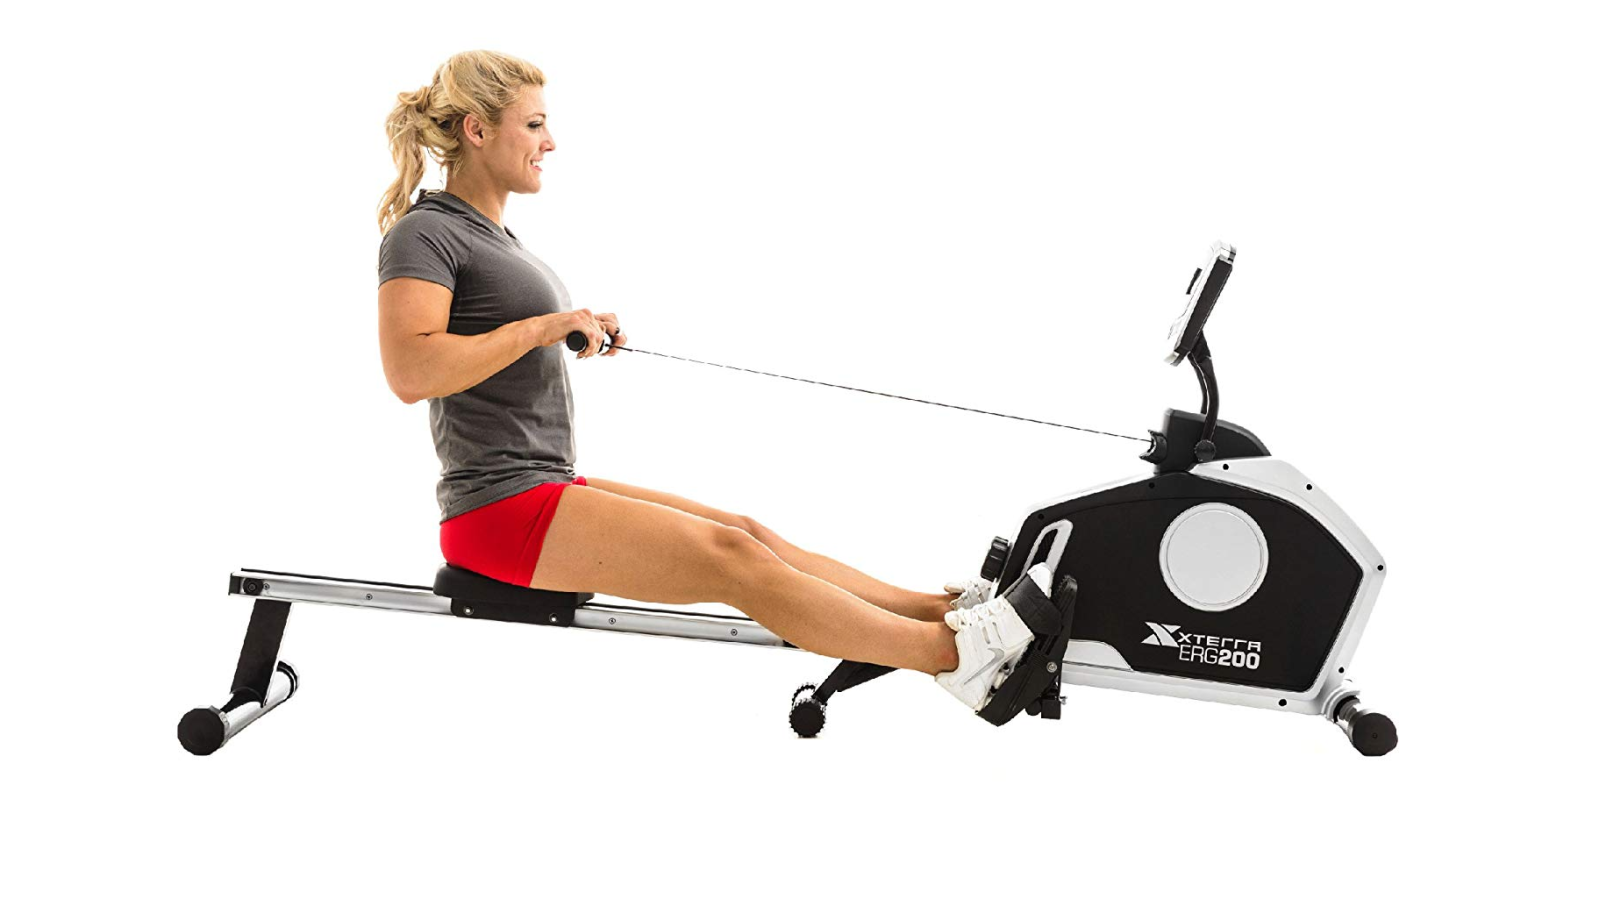 Go with the row: XTERRA's Folding Rower can be yours for $167 (Reg. up to $250) + FREE assembly